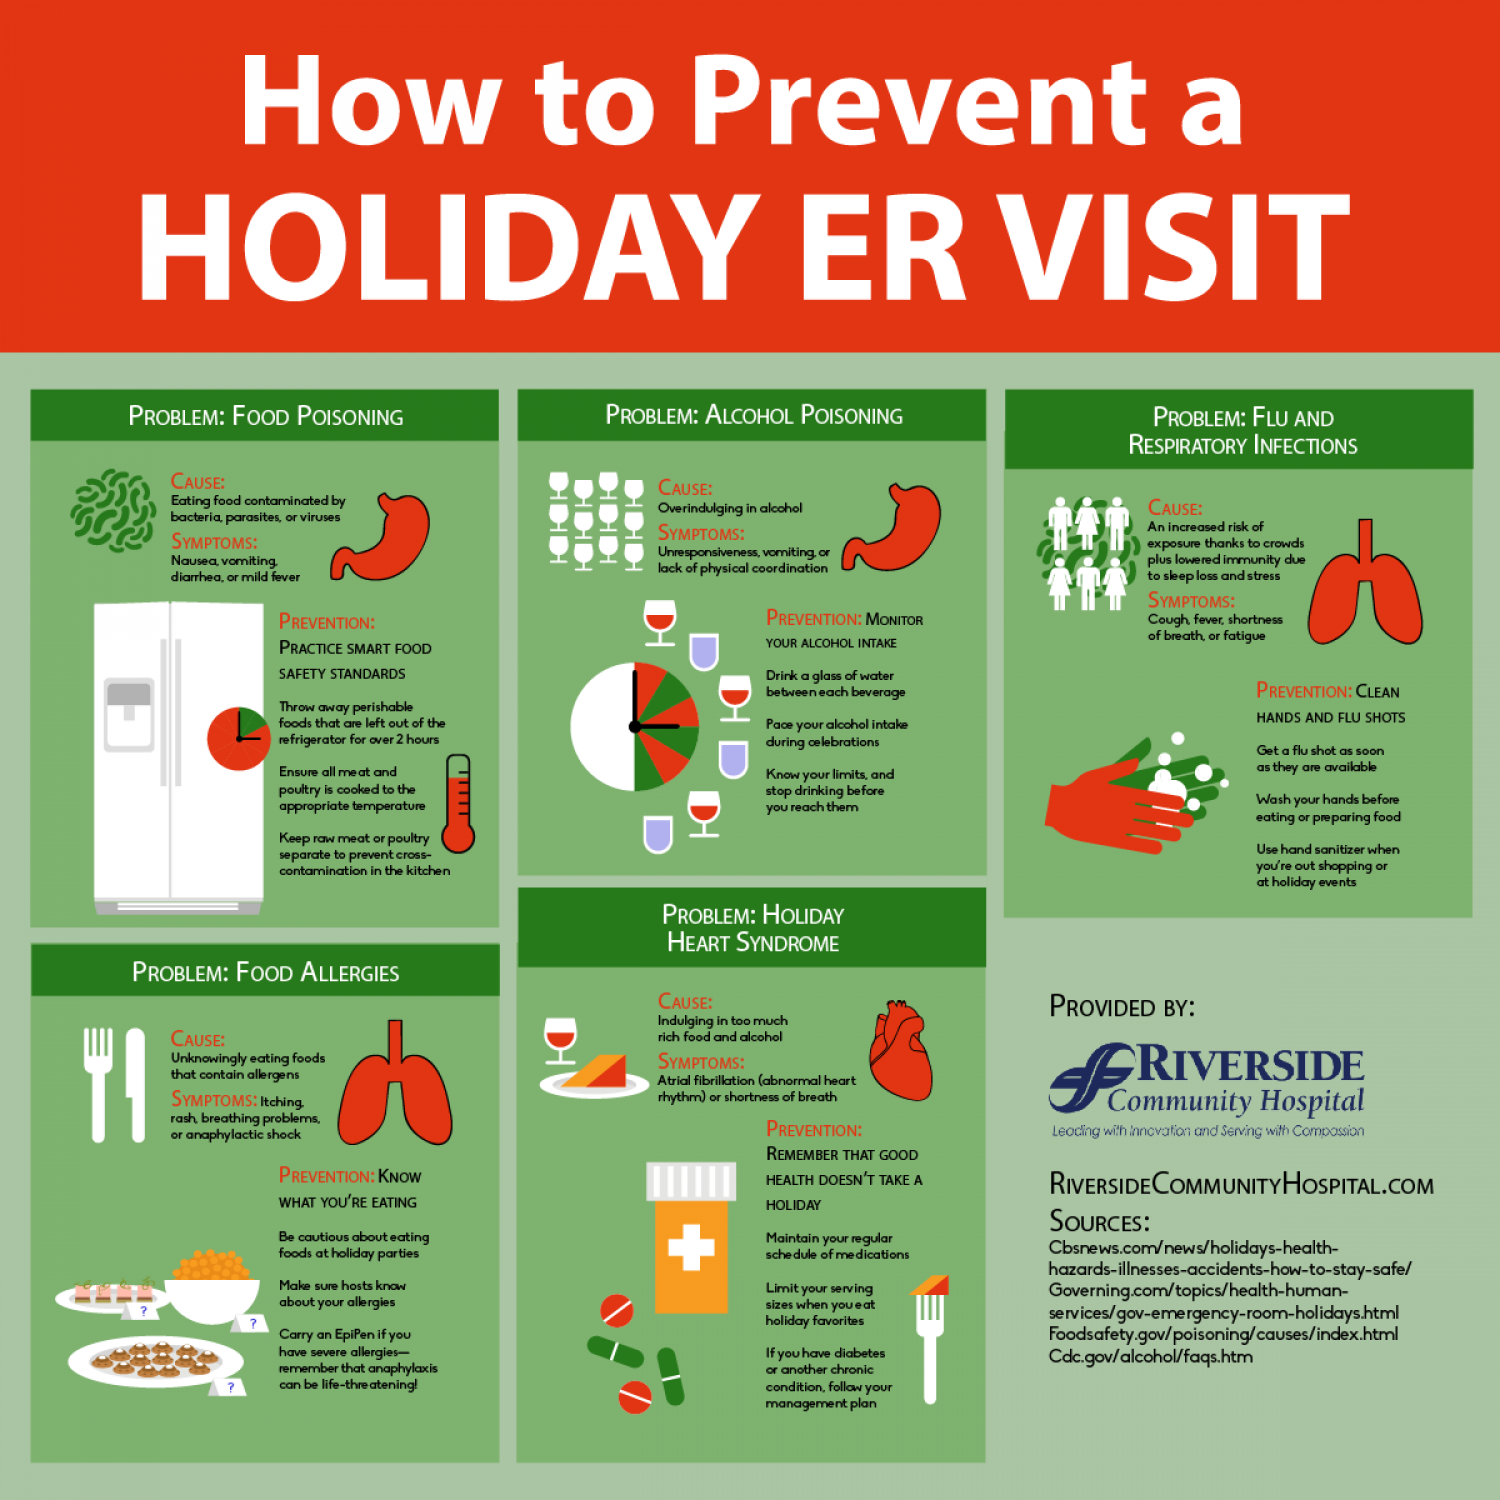 How to Prevent a Holiday ER Visit Infographic